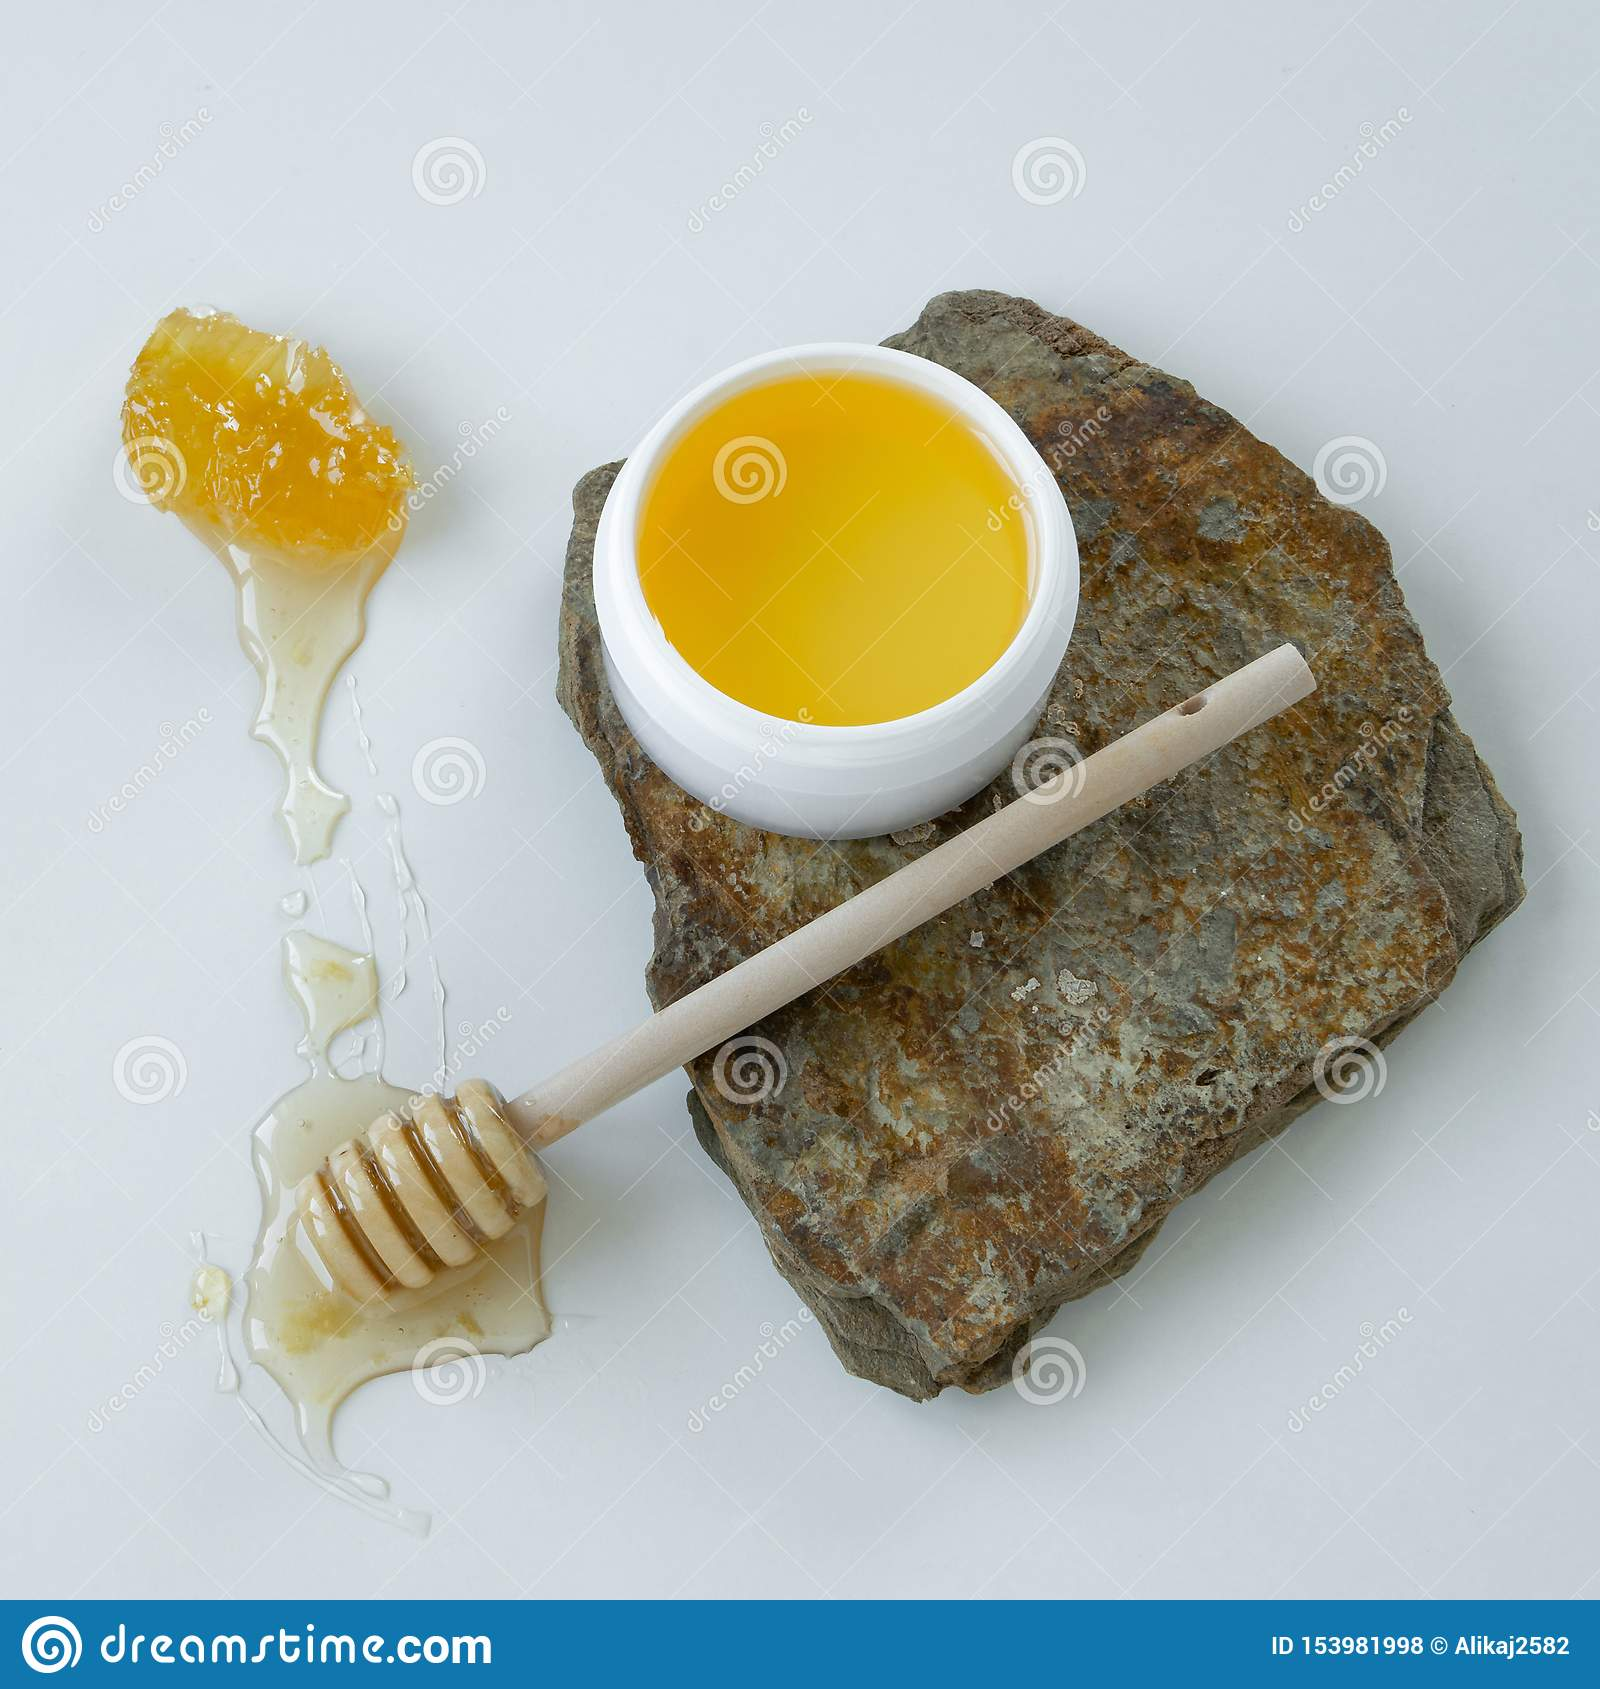 Skin care products with honey. Healthy organic remedy